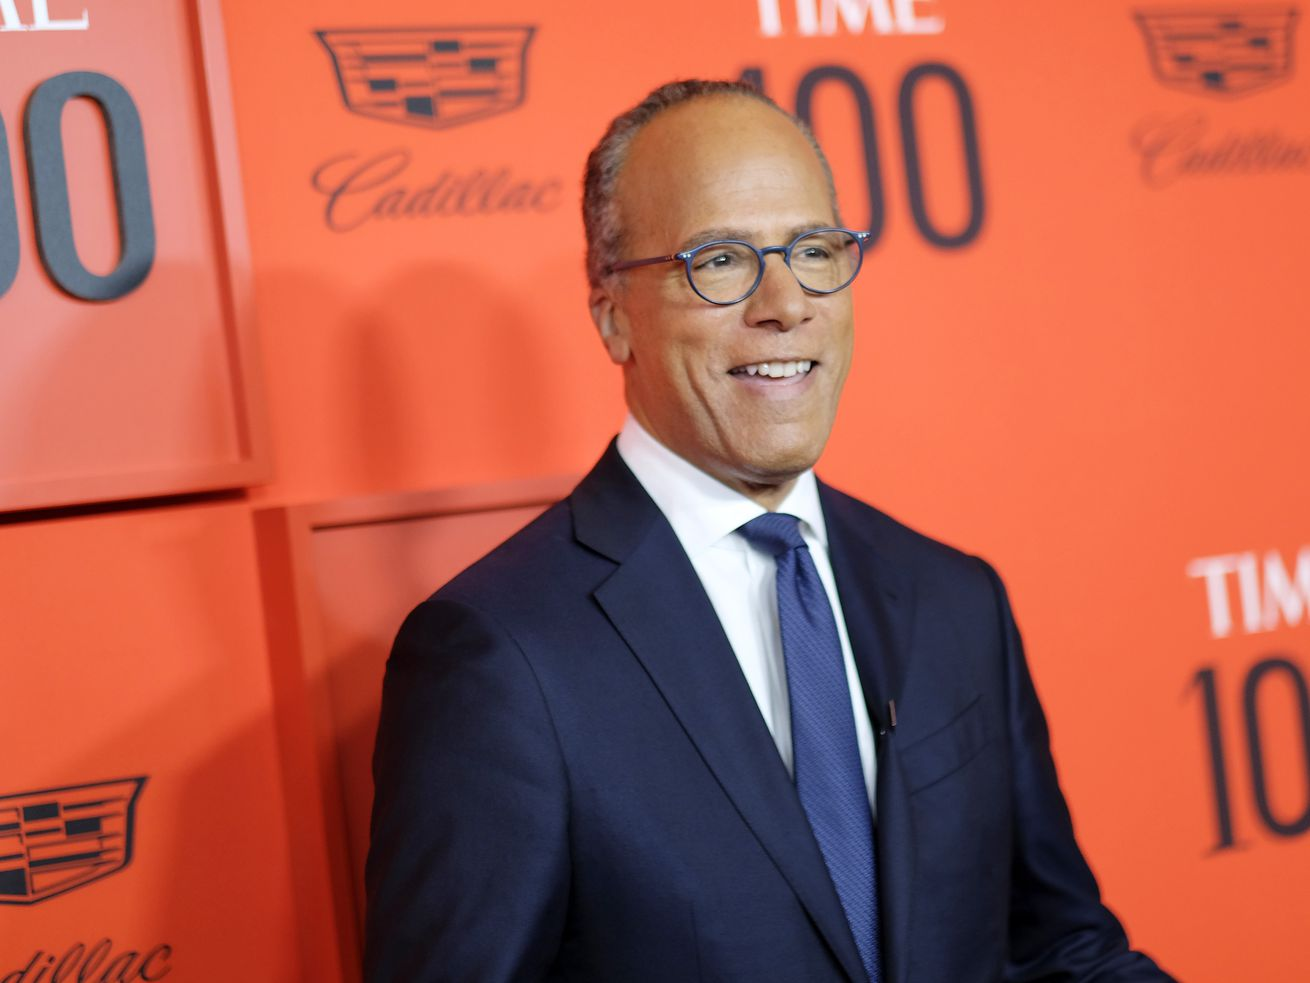 Lester Holt attends the TIME 100 Gala Red Carpet at Jazz at Lincoln Center on April 23, 2019 in New York City.